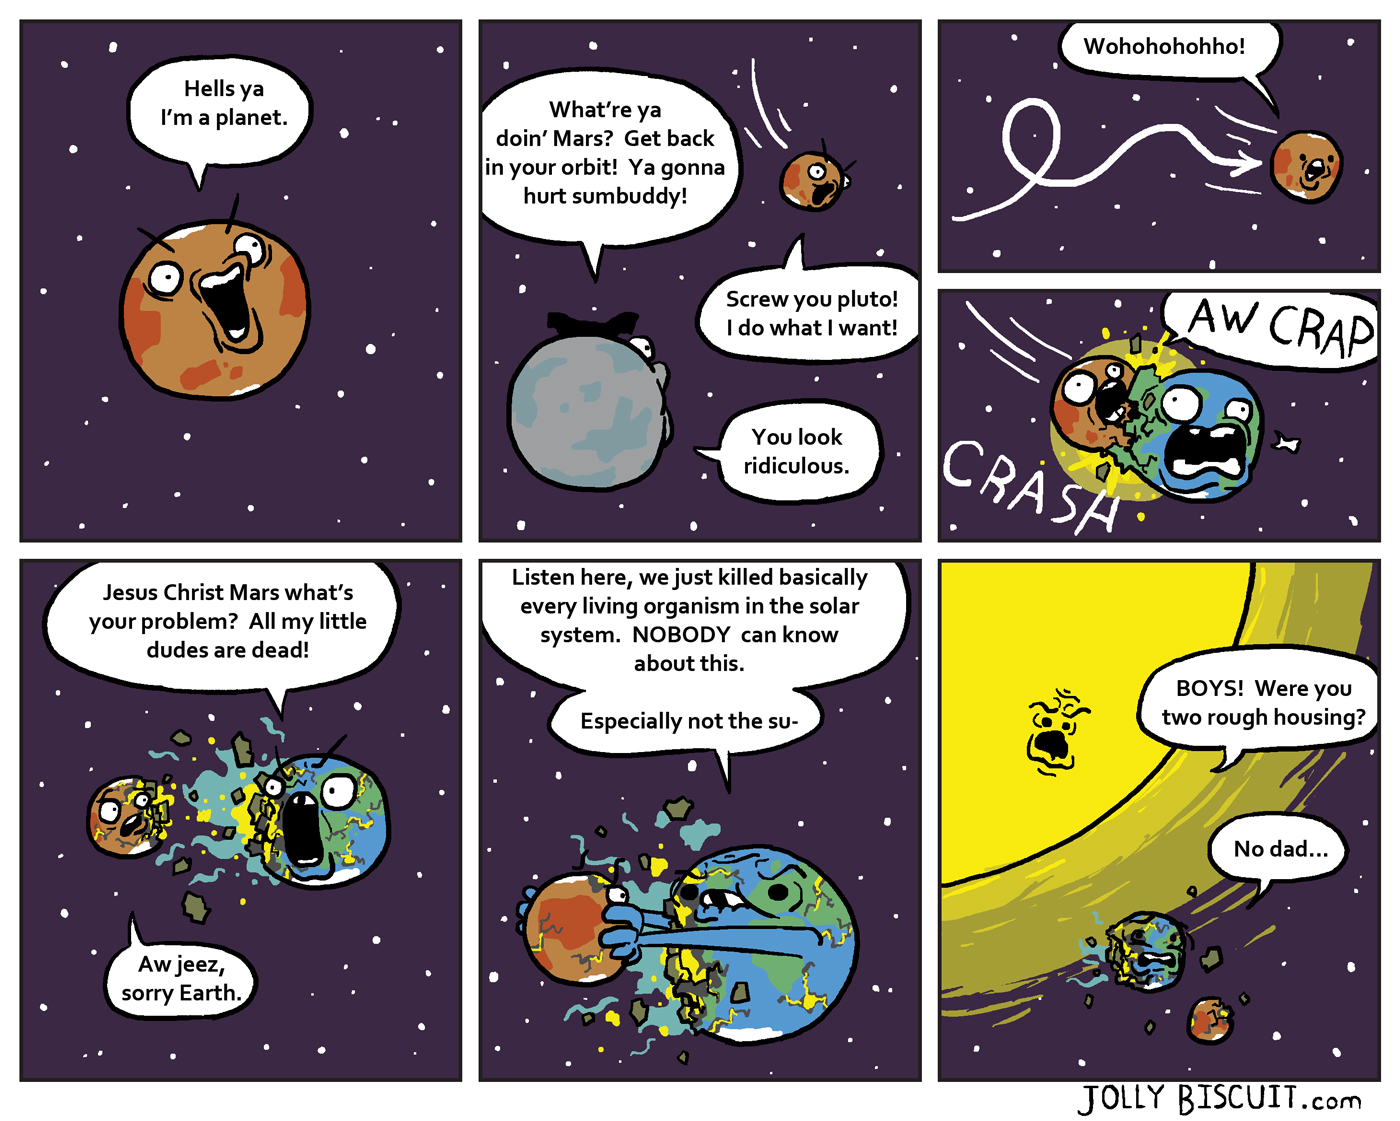 Hitchhiker's guide to the galaxy planet